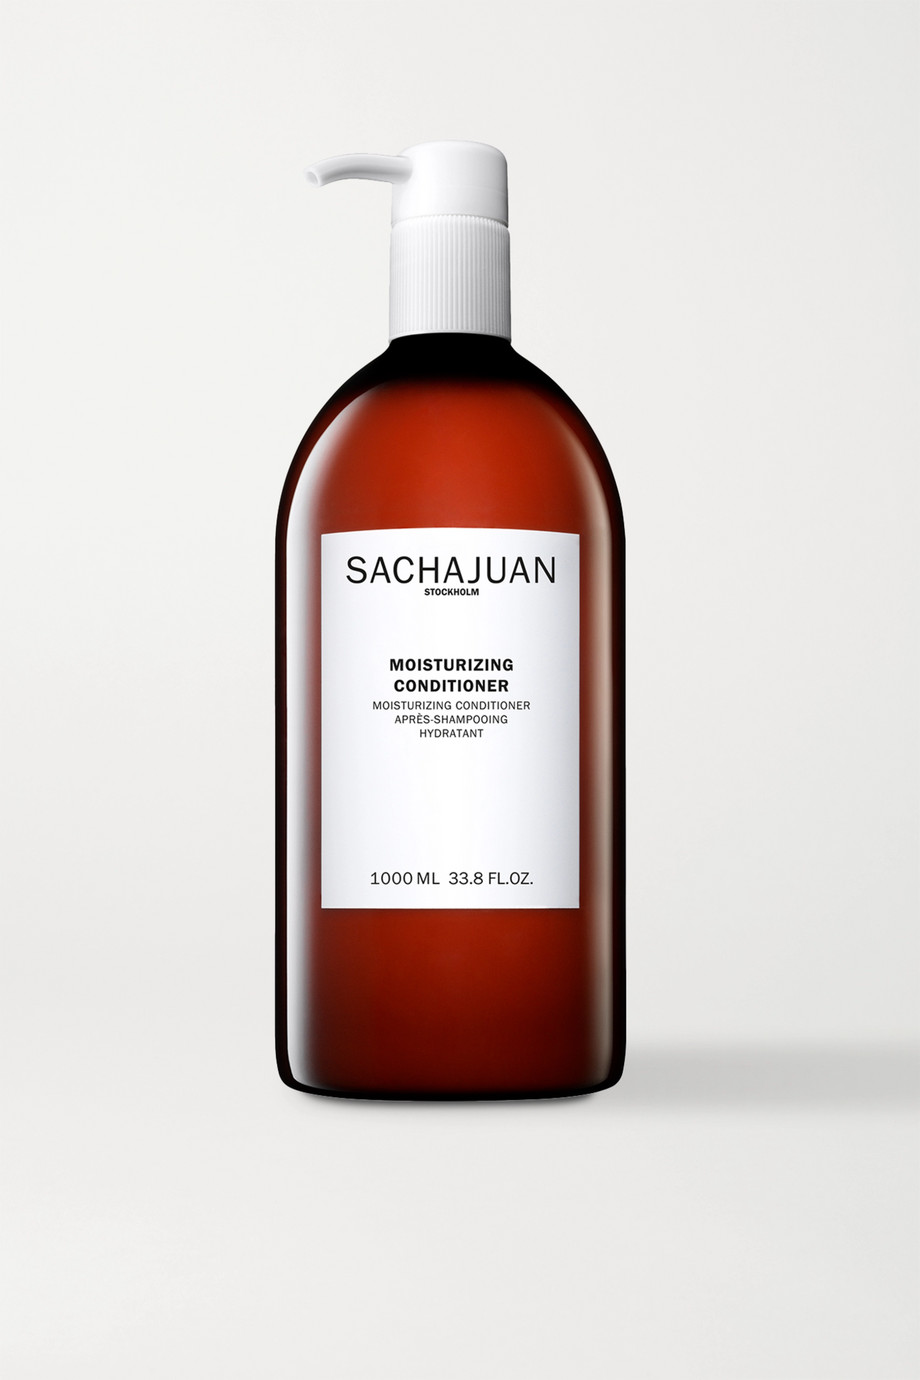 SACHAJUAN Moisturizing Conditioner, 1000ml